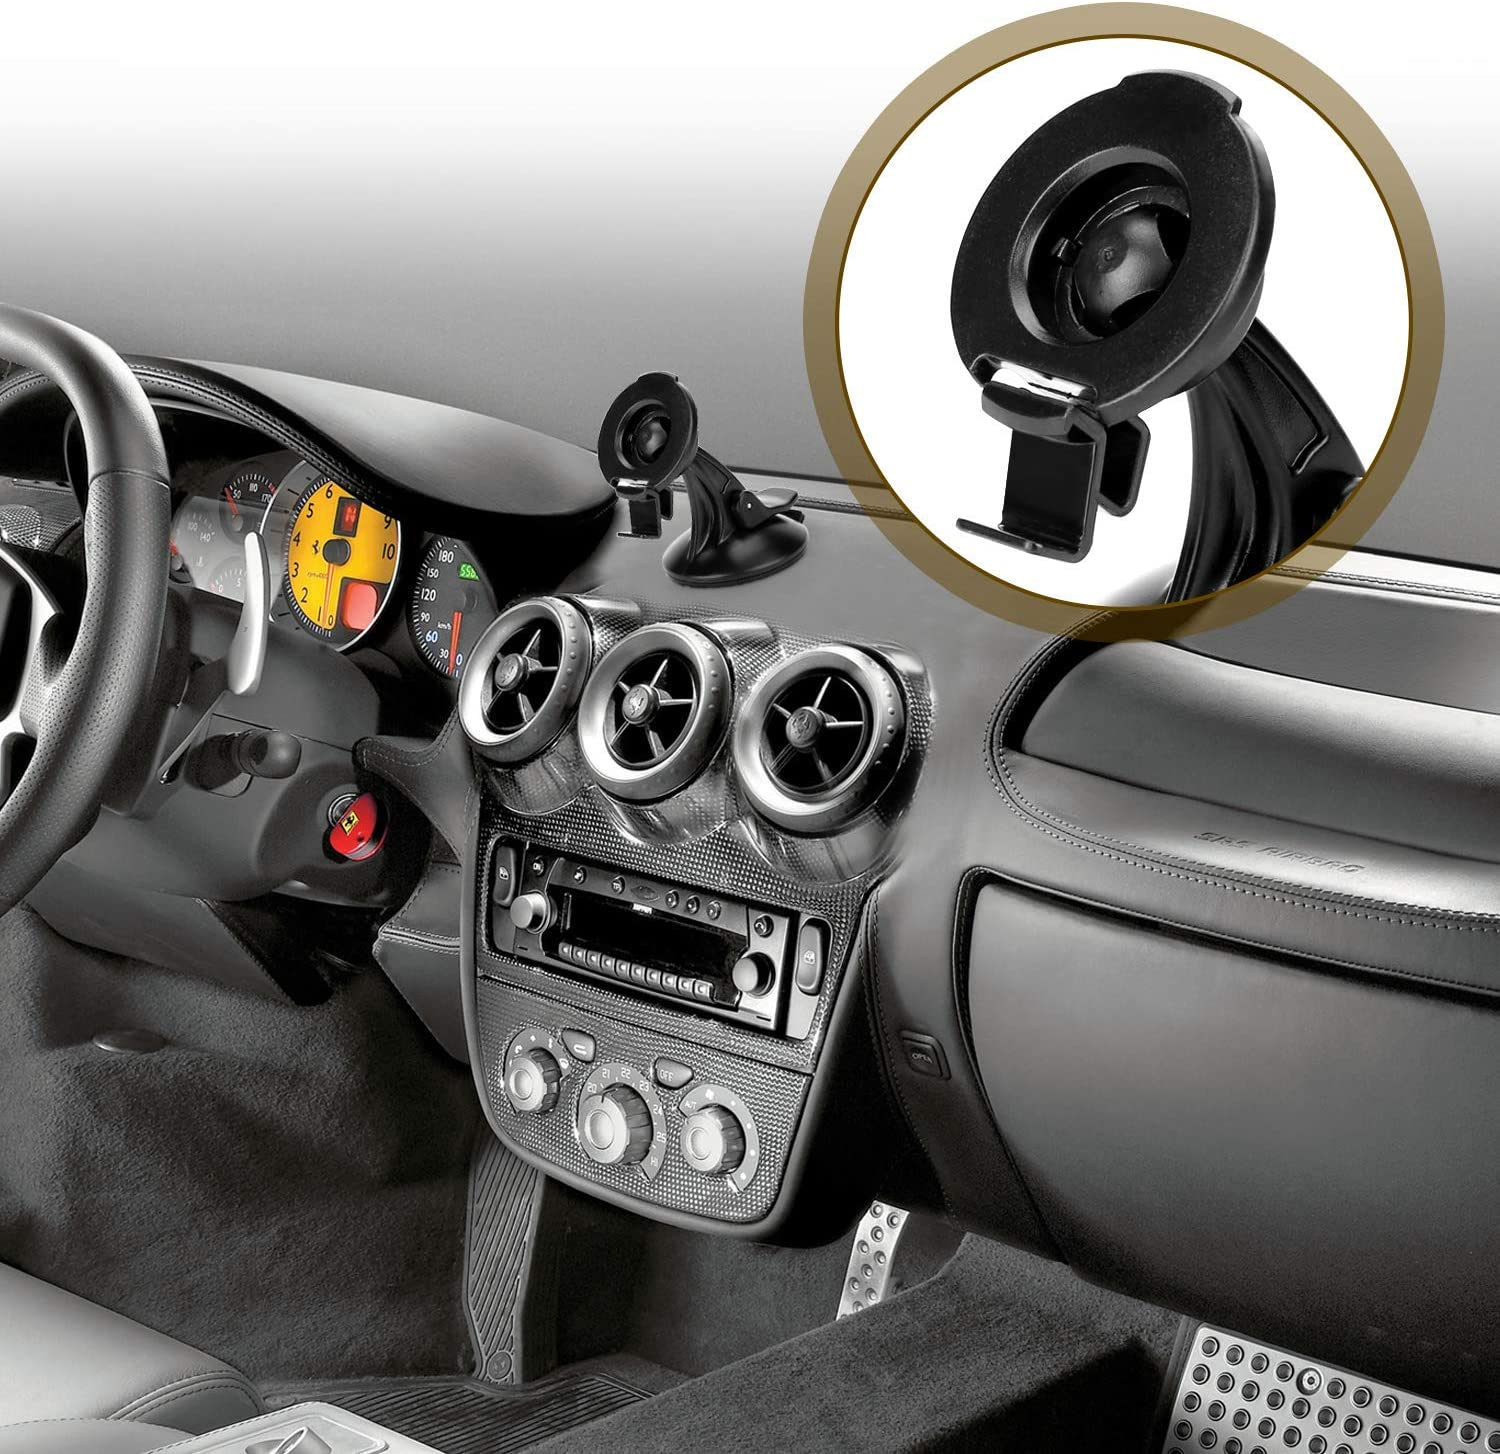 Compare to Garmin 010-11765-01 Y-SPACE Replacement Bracket Mount Compatible with GPS Garmin Nuvi 40 40LM